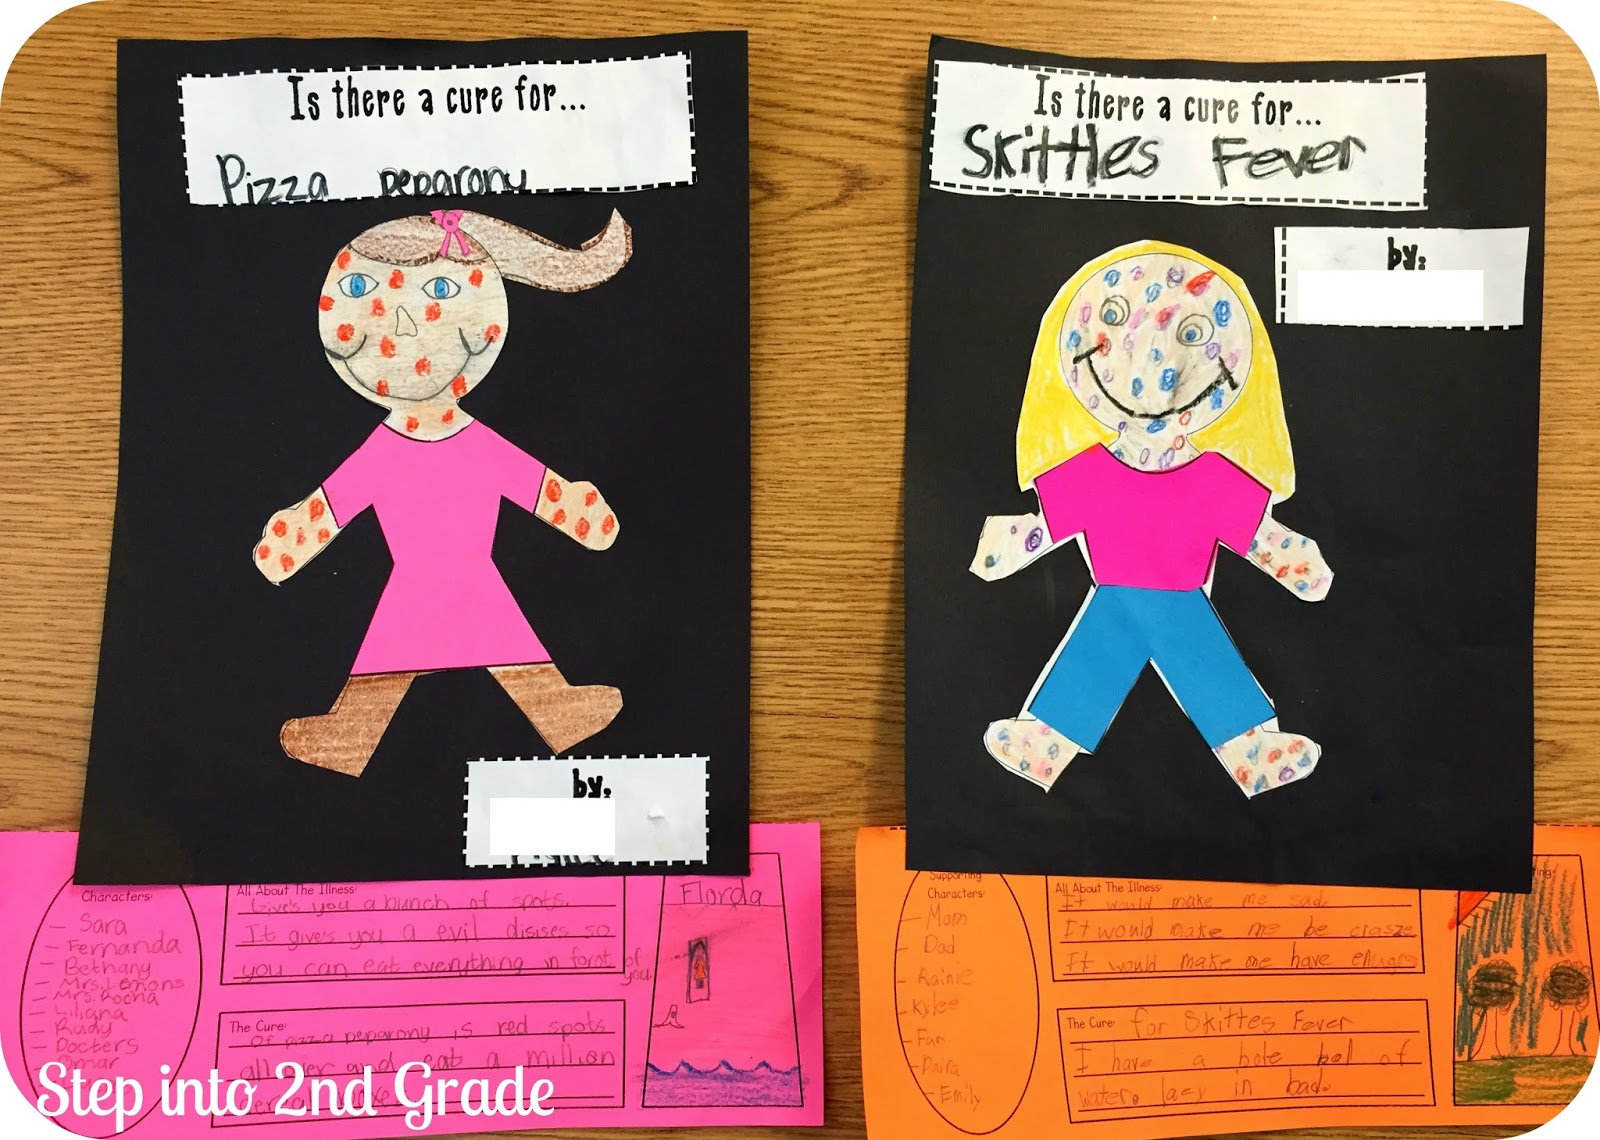 worksheet Chocolate Fever Worksheets step into 2nd grade with mrs lemons chocolate fever fun after coming up their very own they made cover and then a little snapshot of pretend book